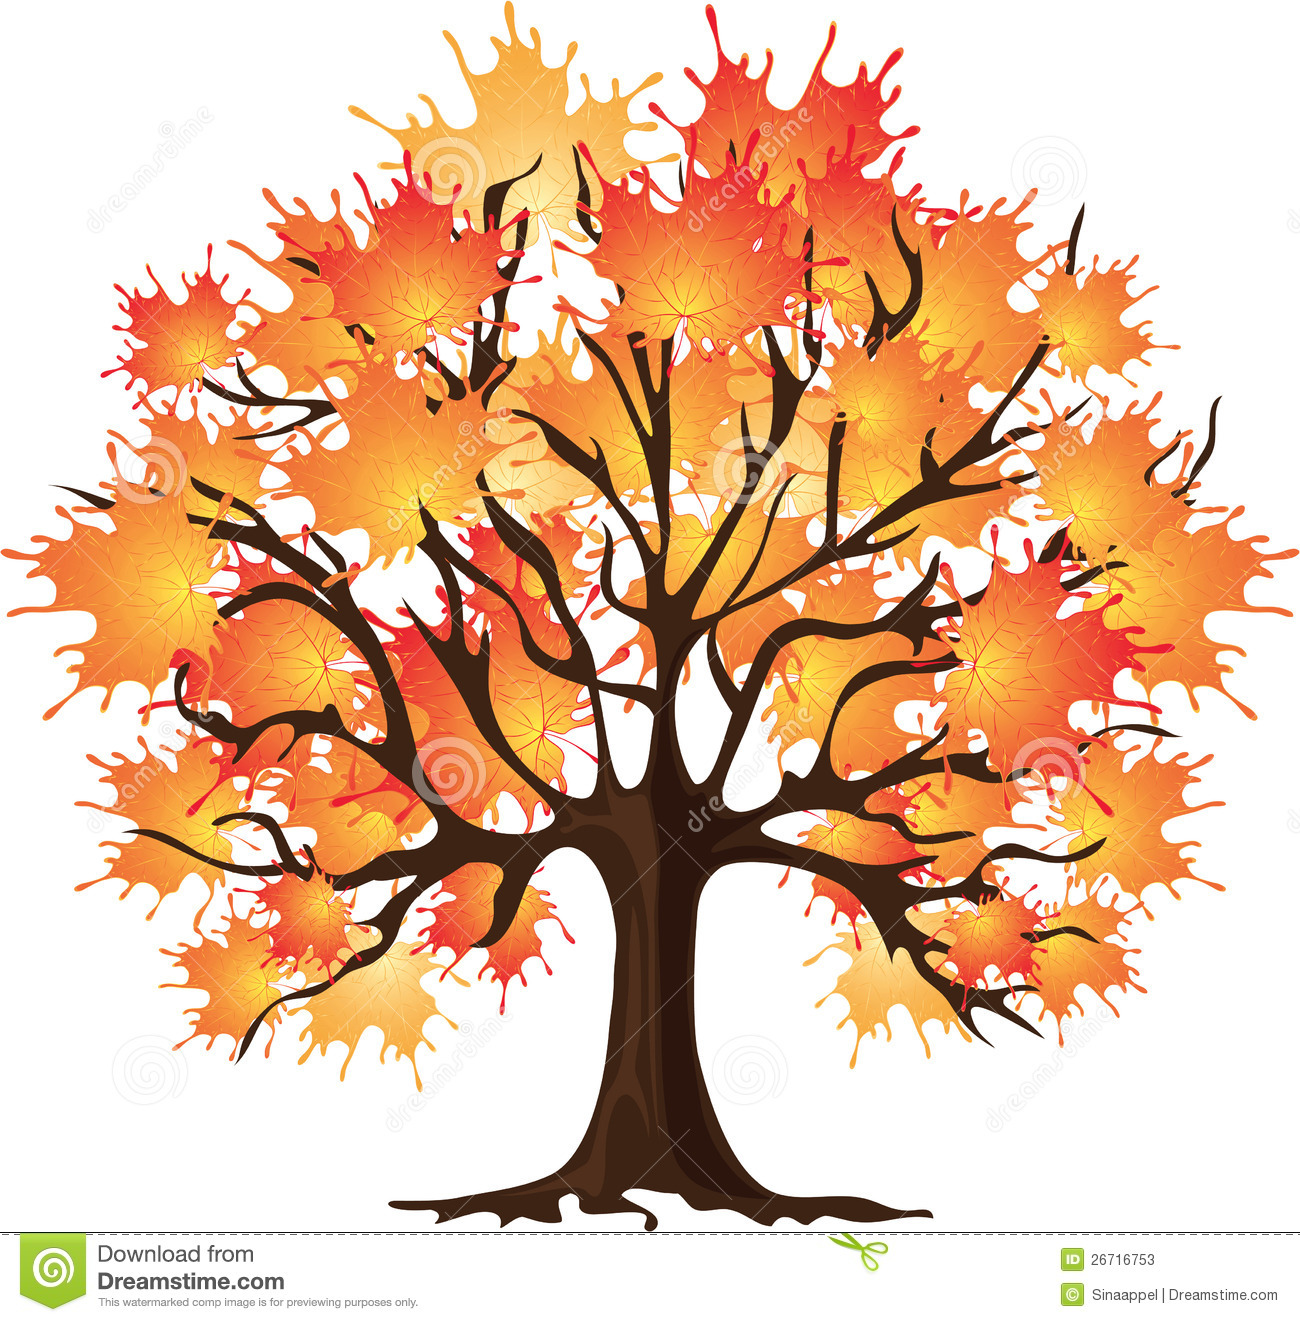 Animated Fall Tree Clip Art Art Autumn Tree Maple Vector Illustration